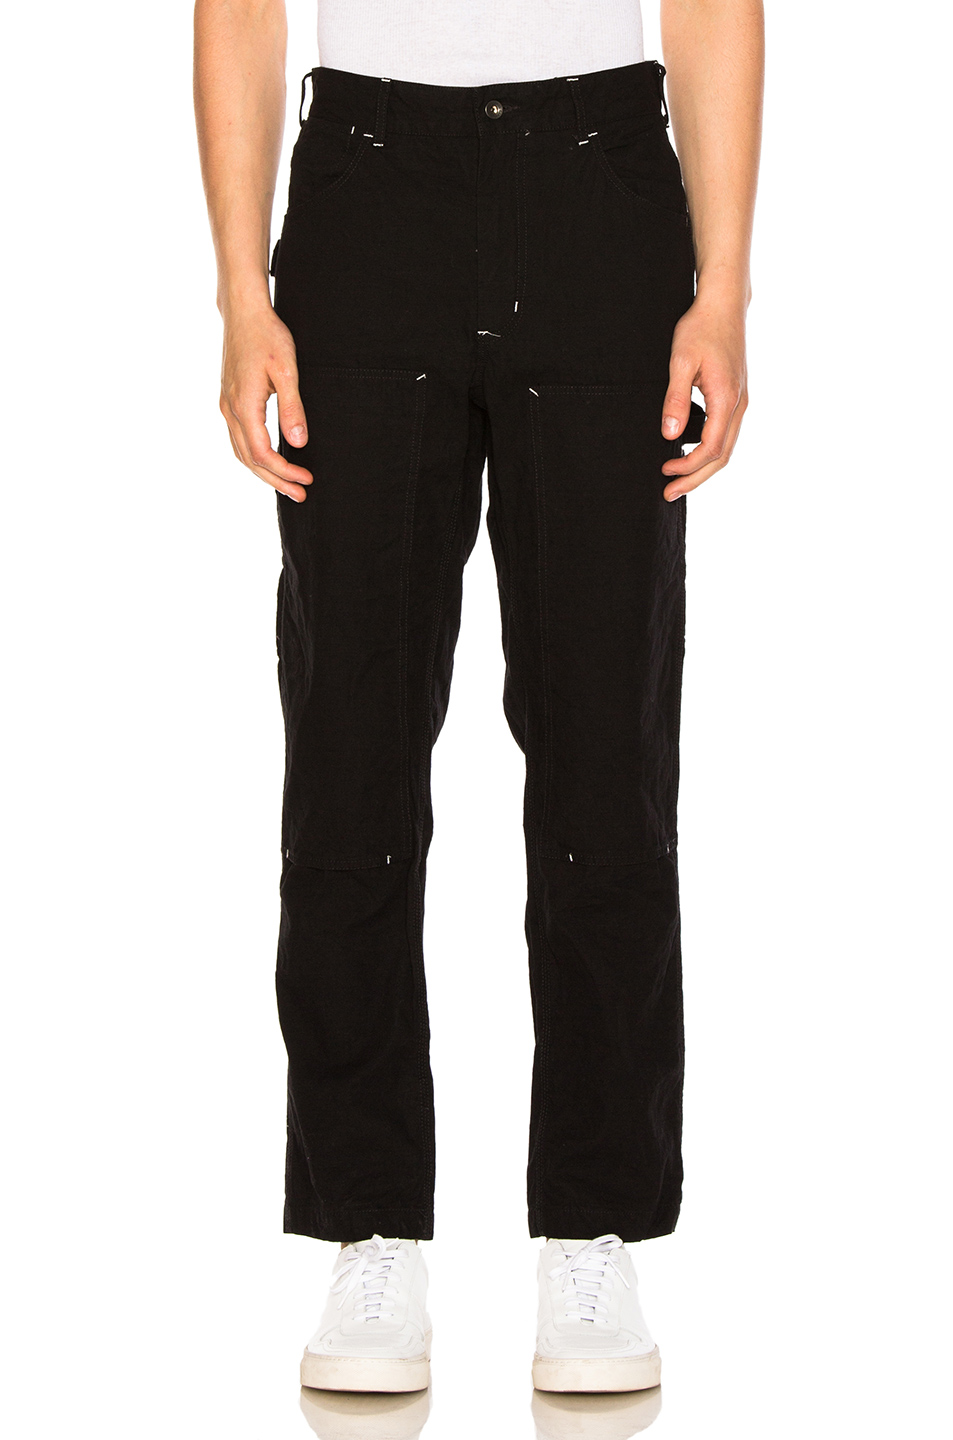 Engineered Garments Painter Pants in Black